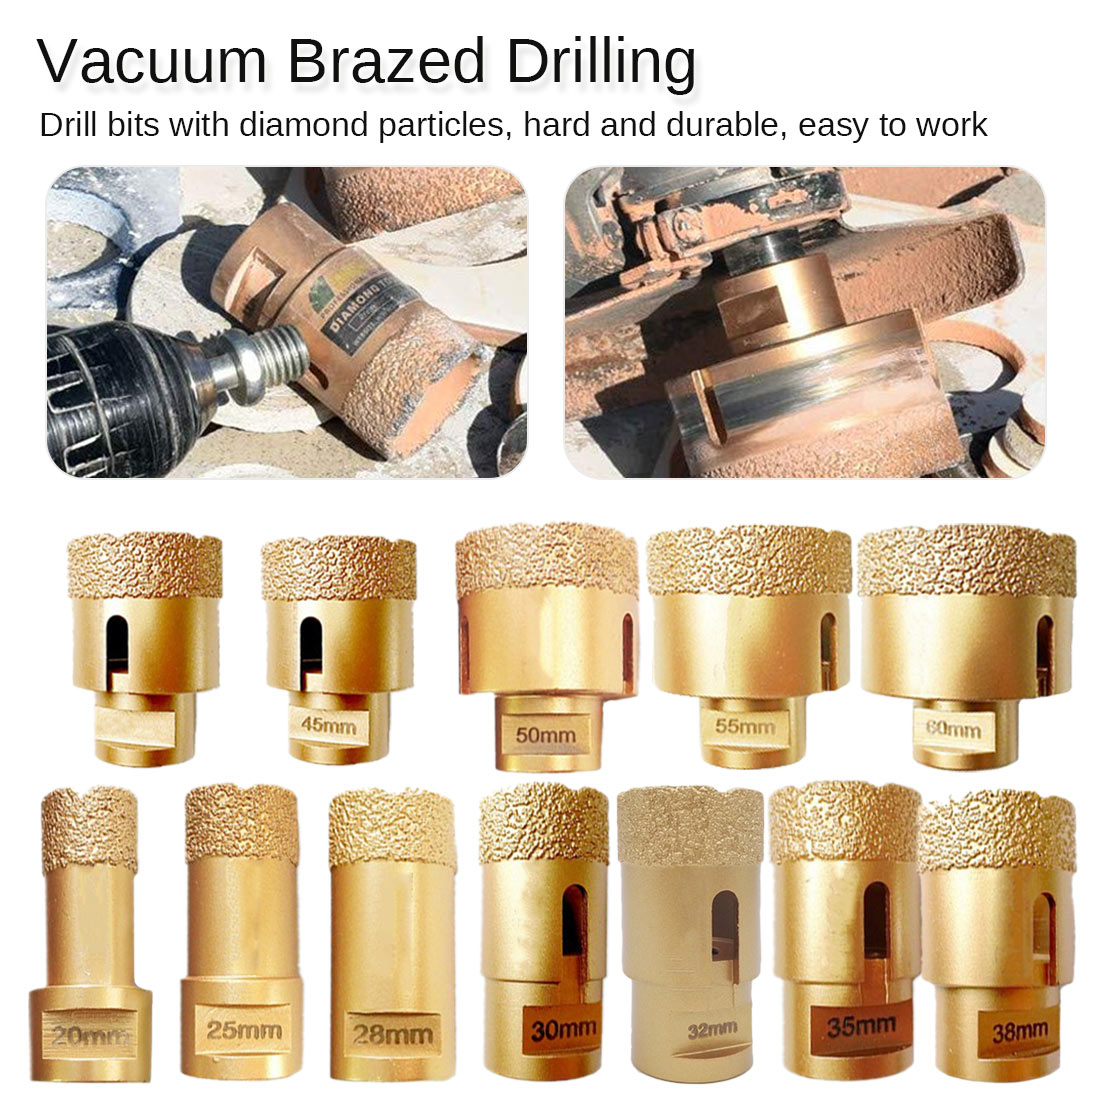 1pc Diamond Vacuum Brazed Drilling Core Bits M14 Connection Drill Bits Hole Diamond Height 15MM Dry/wet Drilling